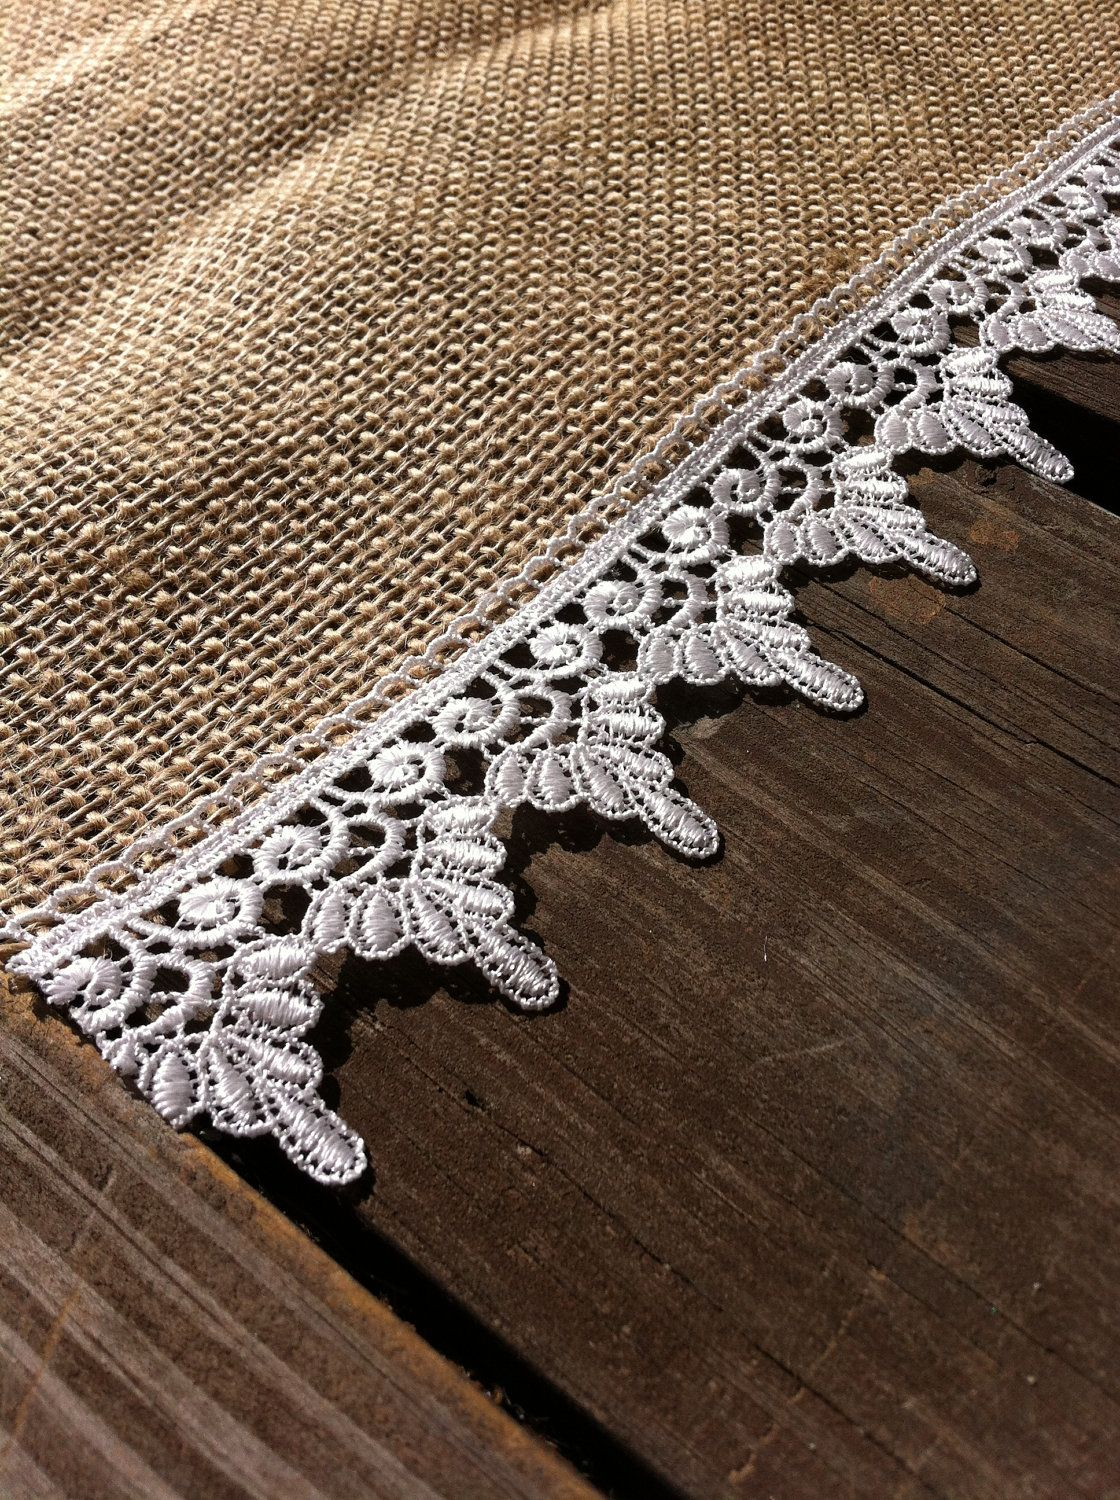 Knitted wedding decorations  Burlap and Lace Placemats Country Wedding Burlap and Lace Tableware